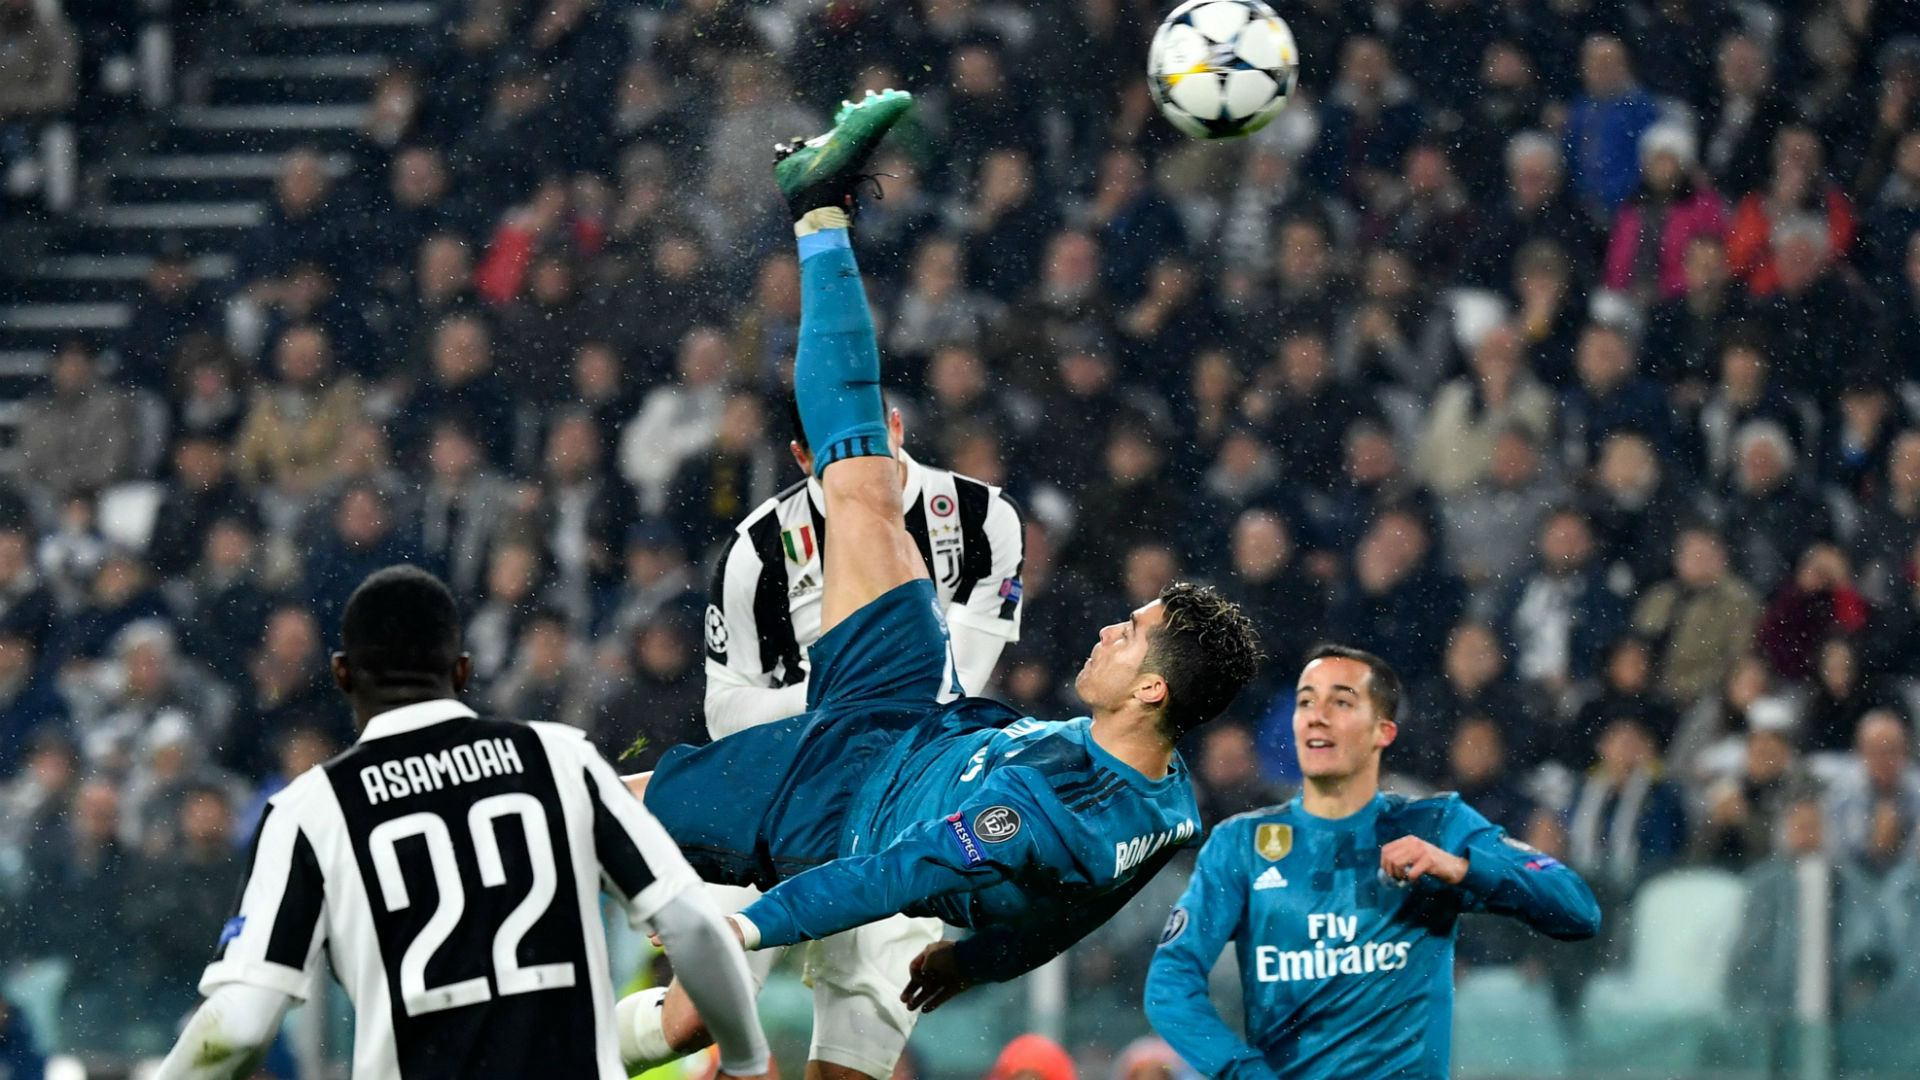 Watch Cristiano Ronaldo S Incredible Bicycle Kick Goal In Champions League Against Juventus Goal Com